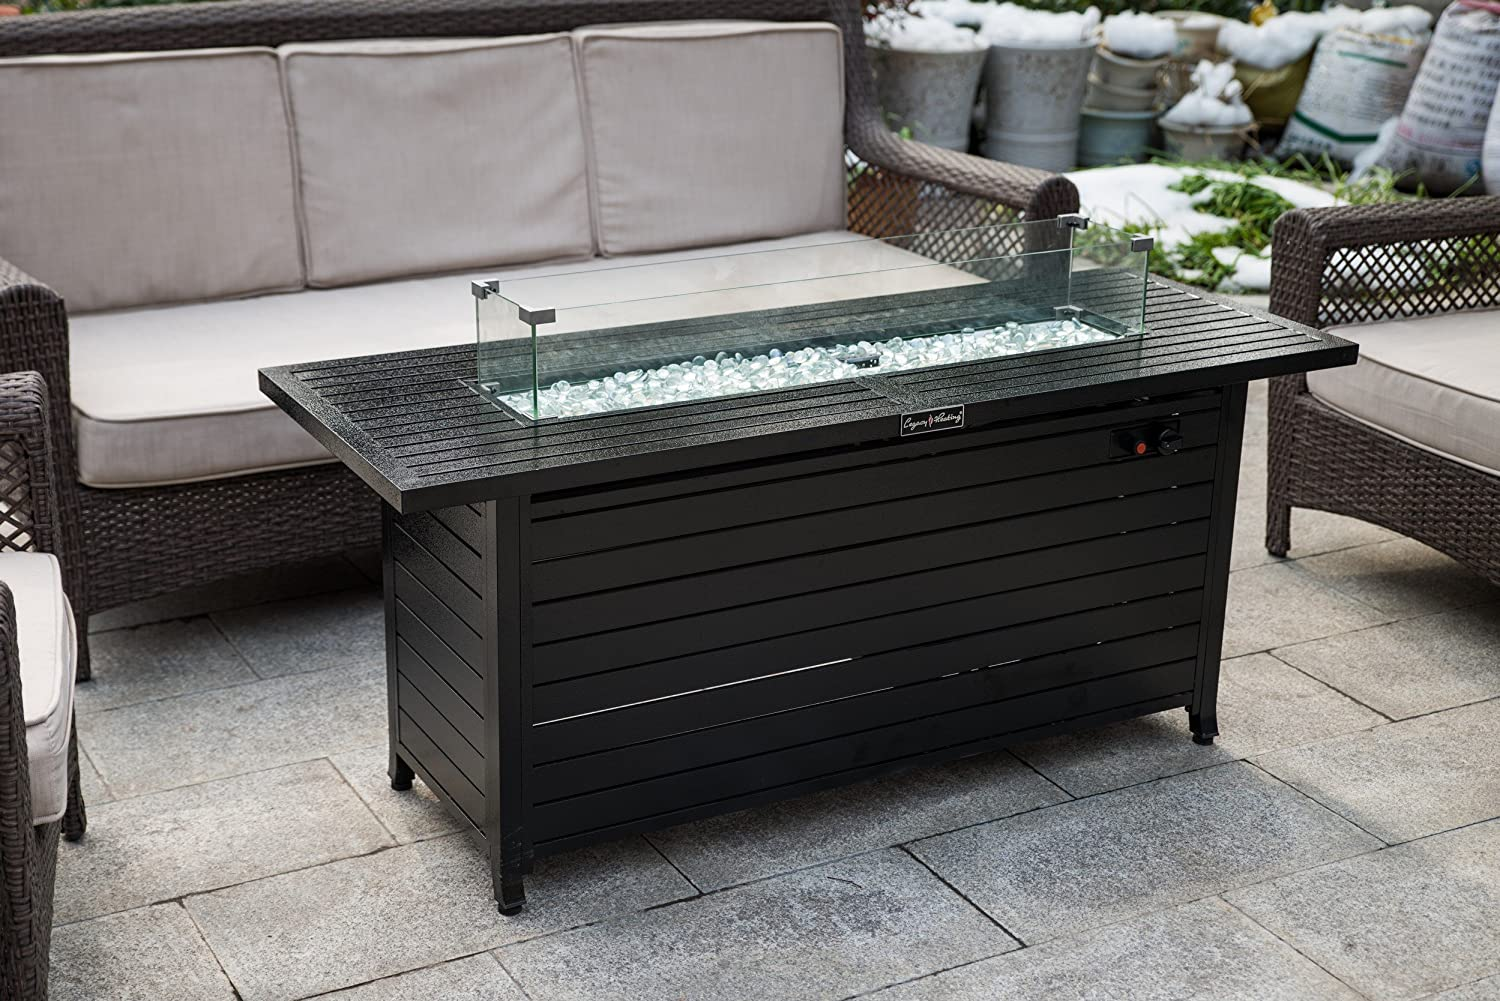 LEGACY HEATING Extruded Aluminum Rectangular Fire Table with Glass Wind Guard, with Cover and Table Lid